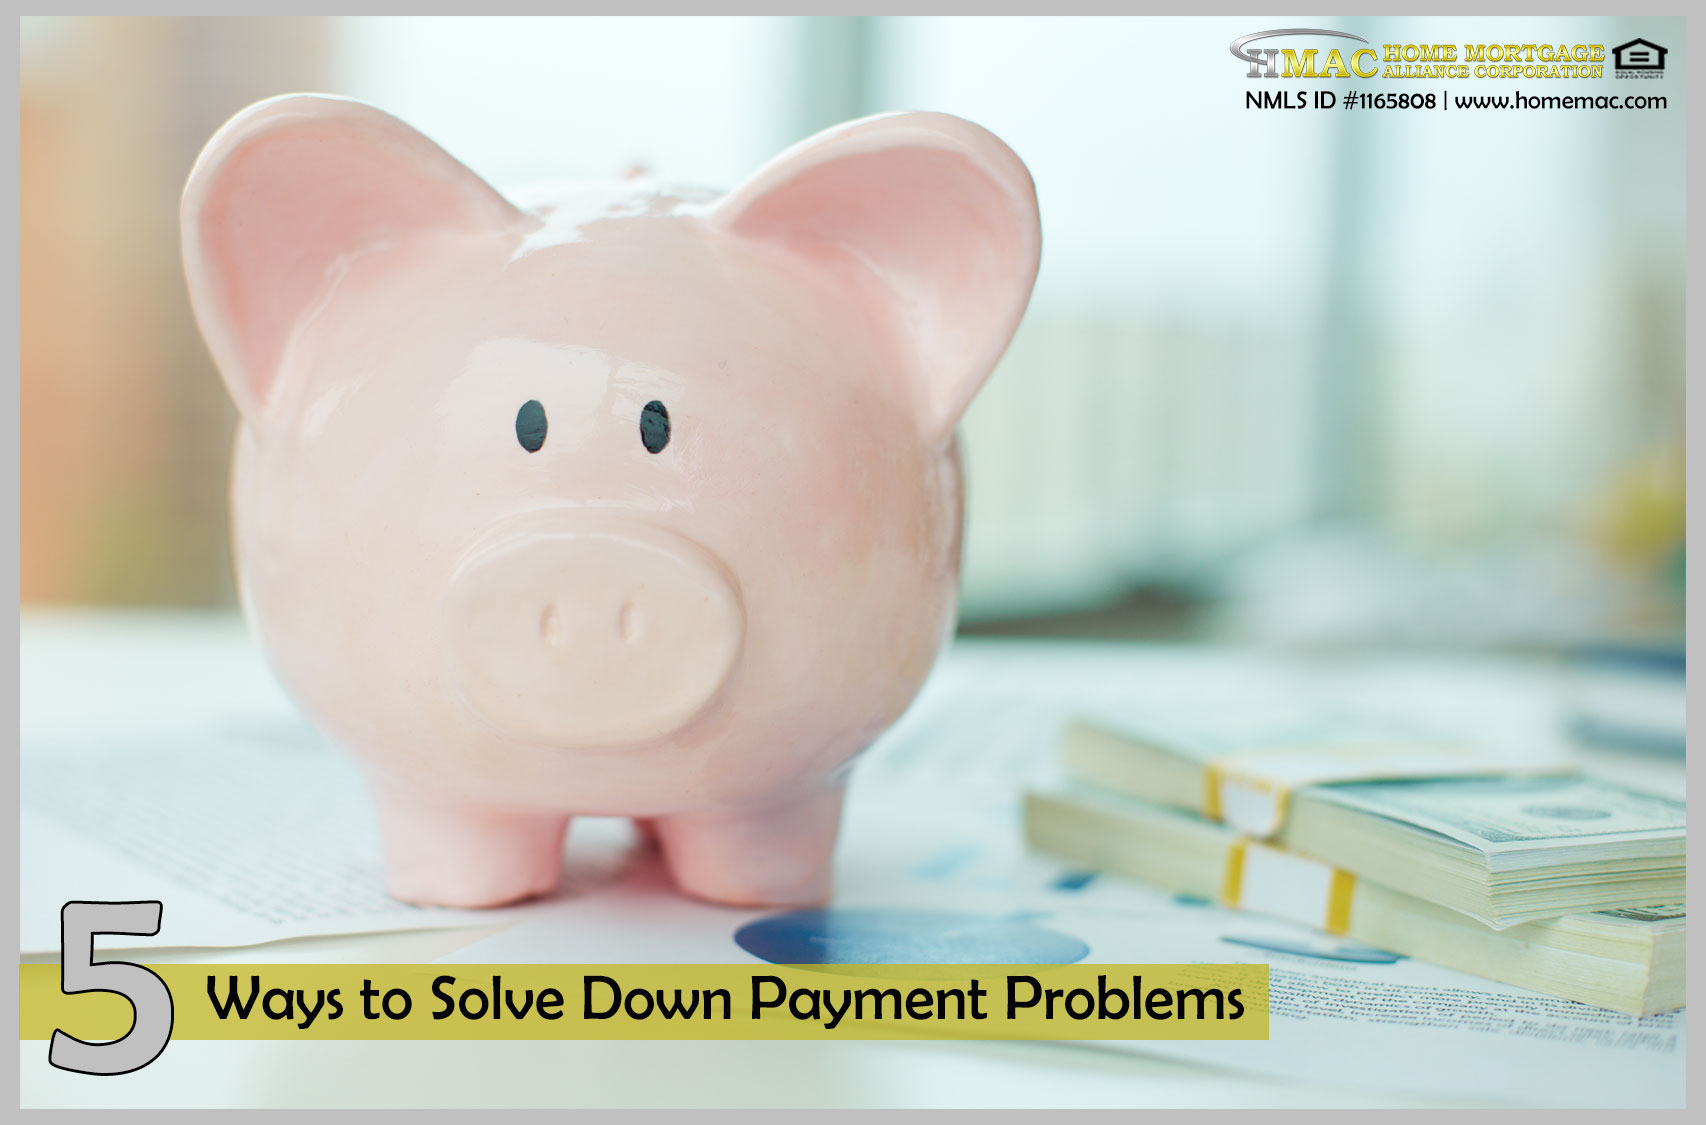 5 ways to solve down payment problems